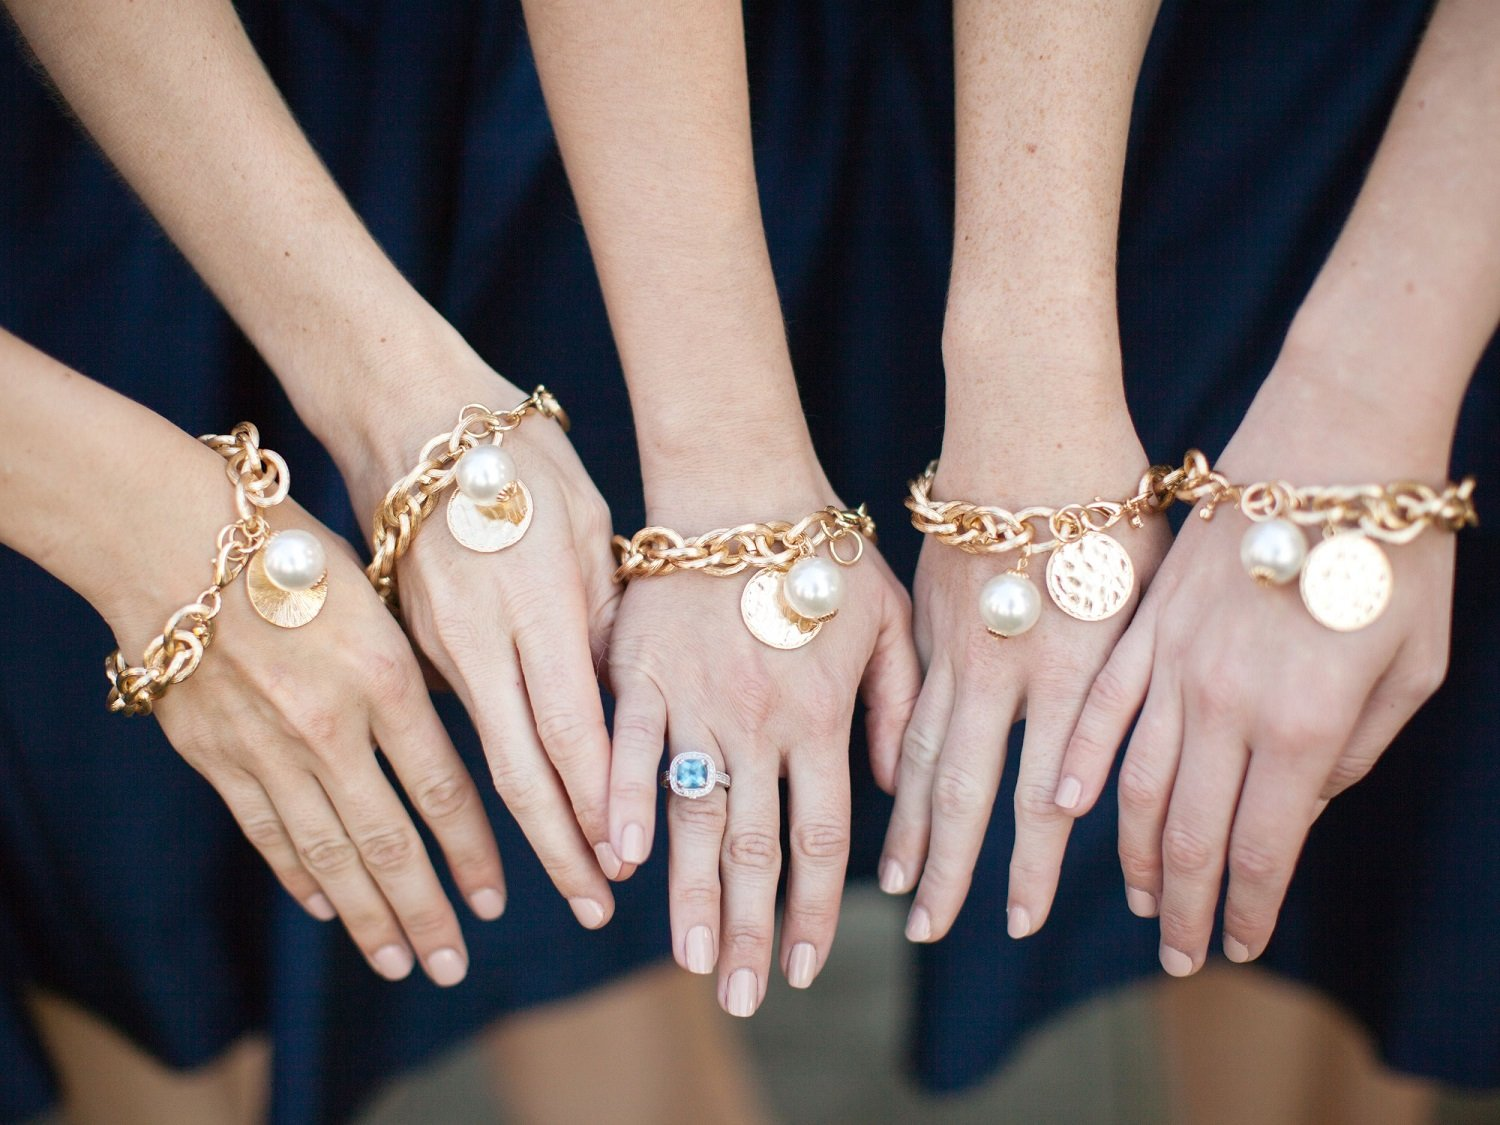 A Beautiful Bracelet for Your Bridesmaids, a Gift in Return that They would Never Forget